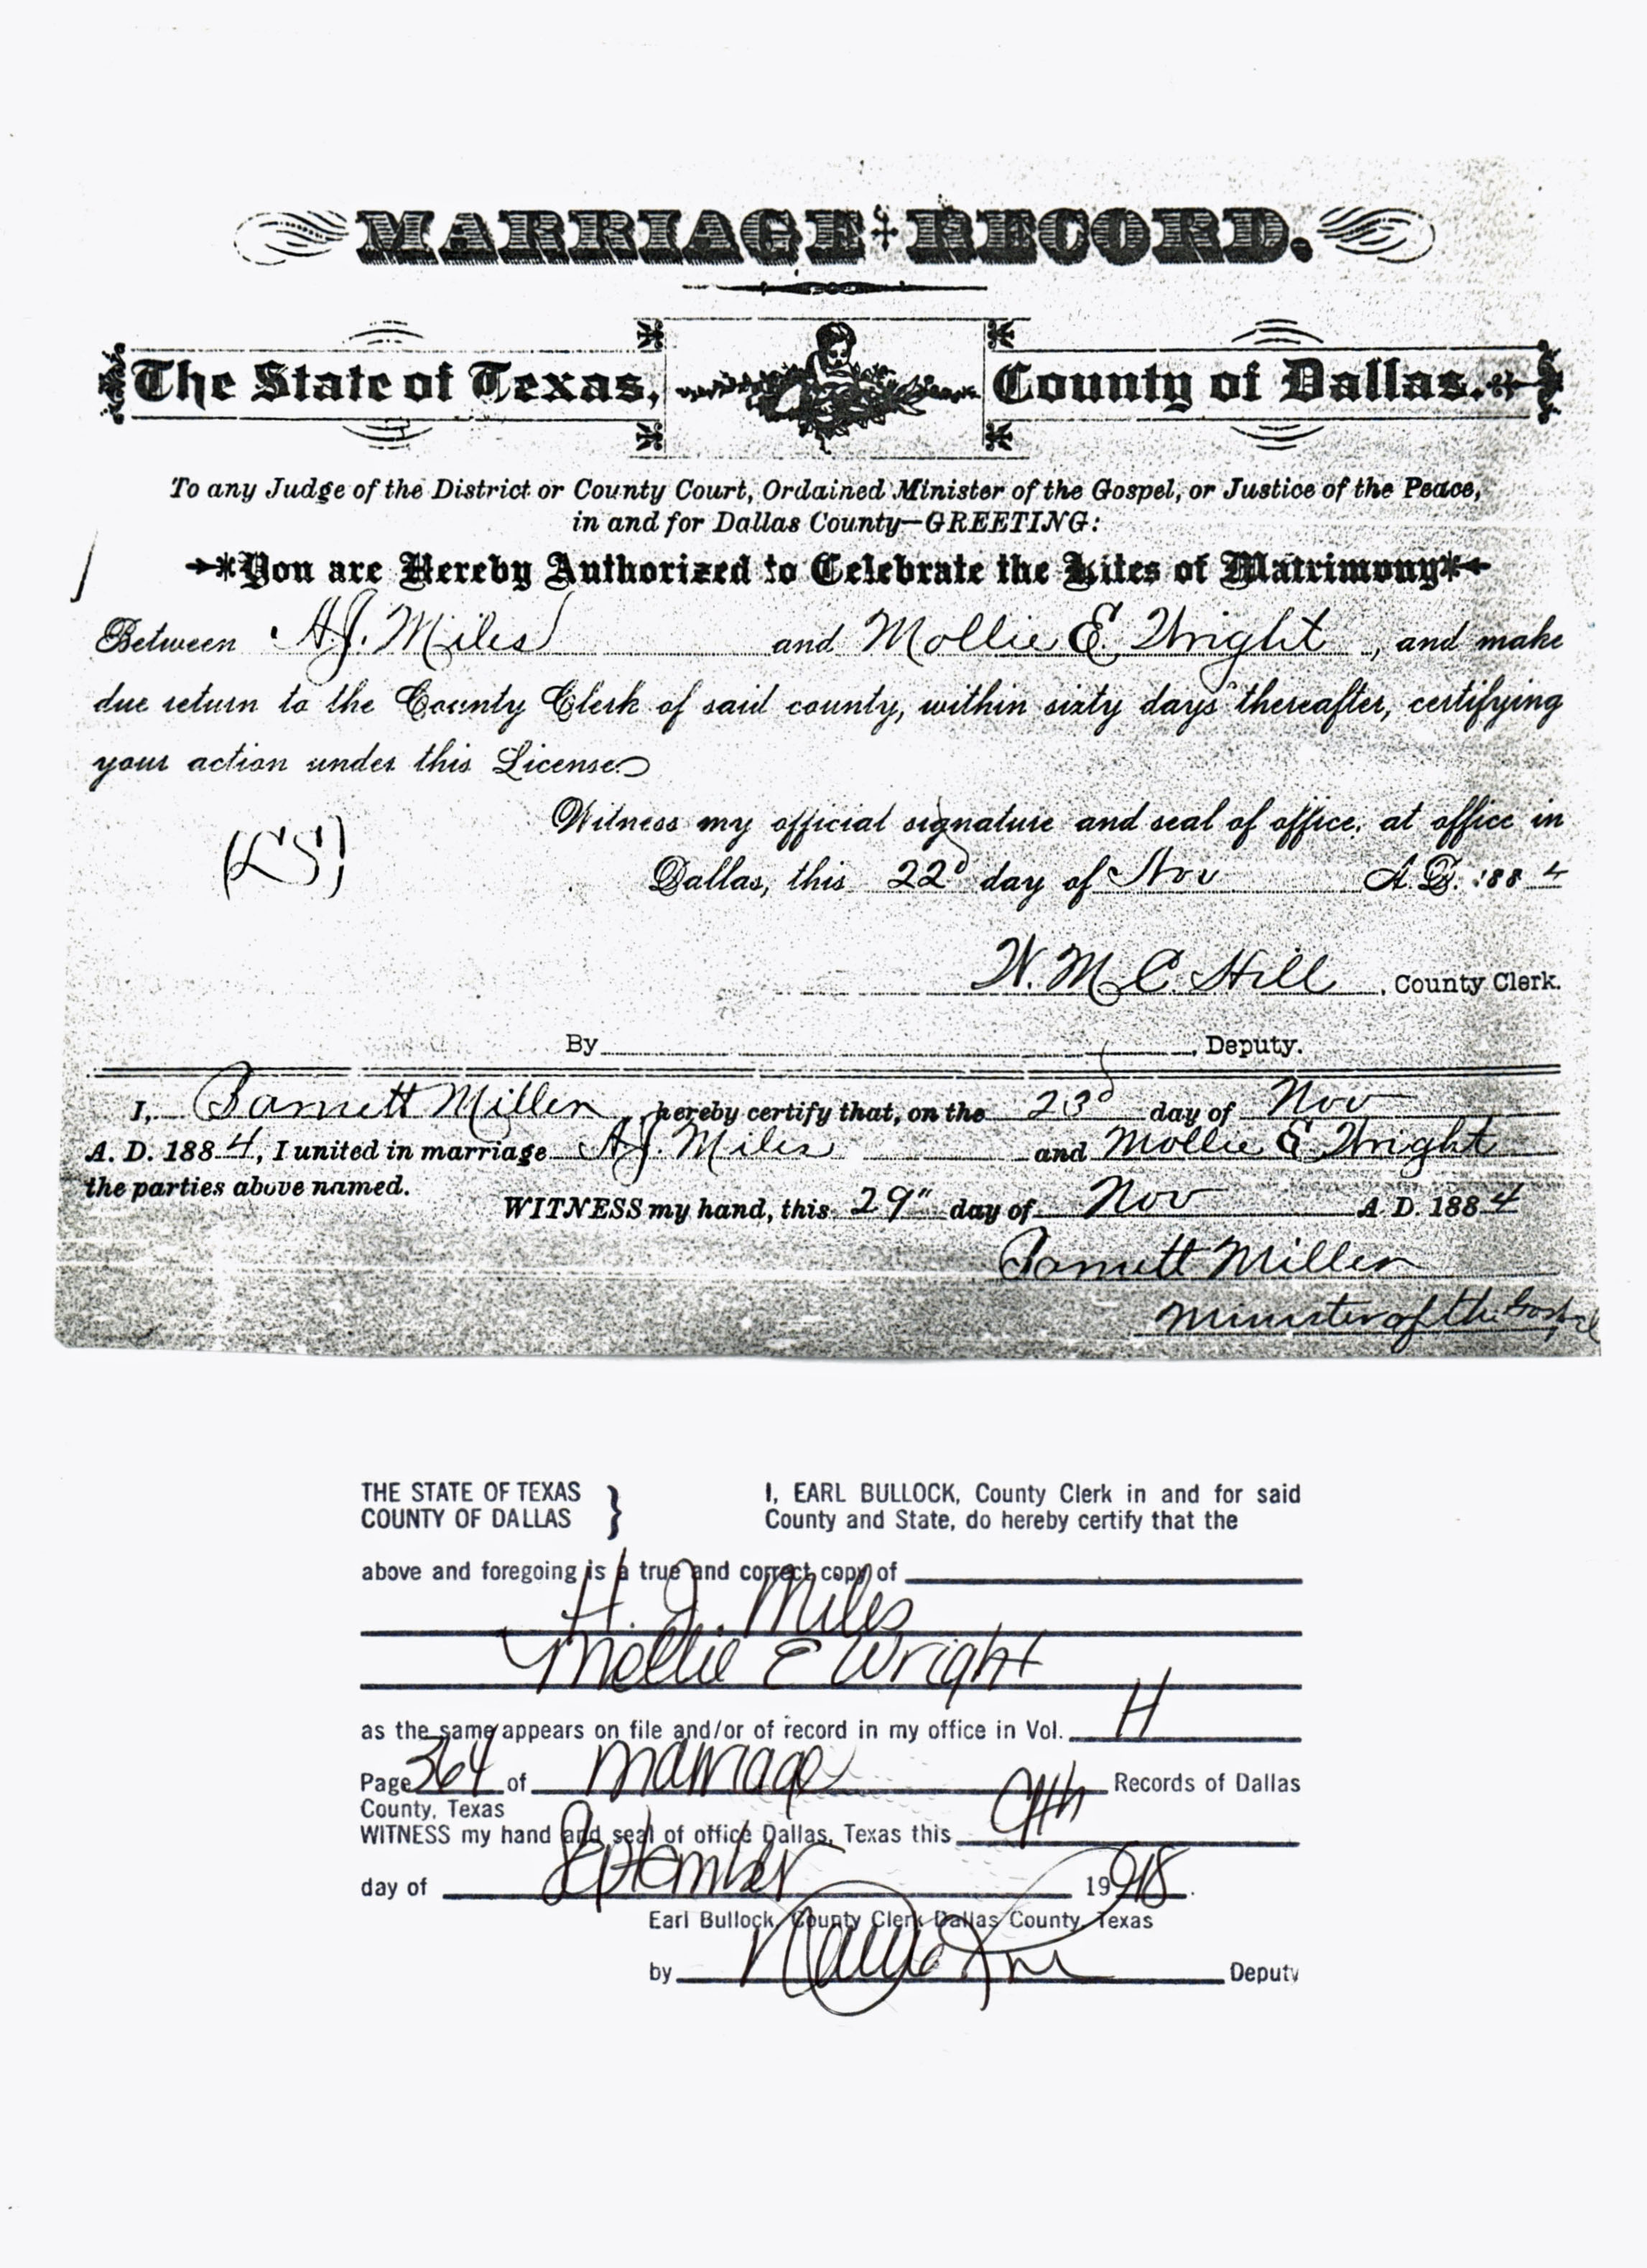 Documents Marriage Certificate For Andrew Jackson Miles And Mollie